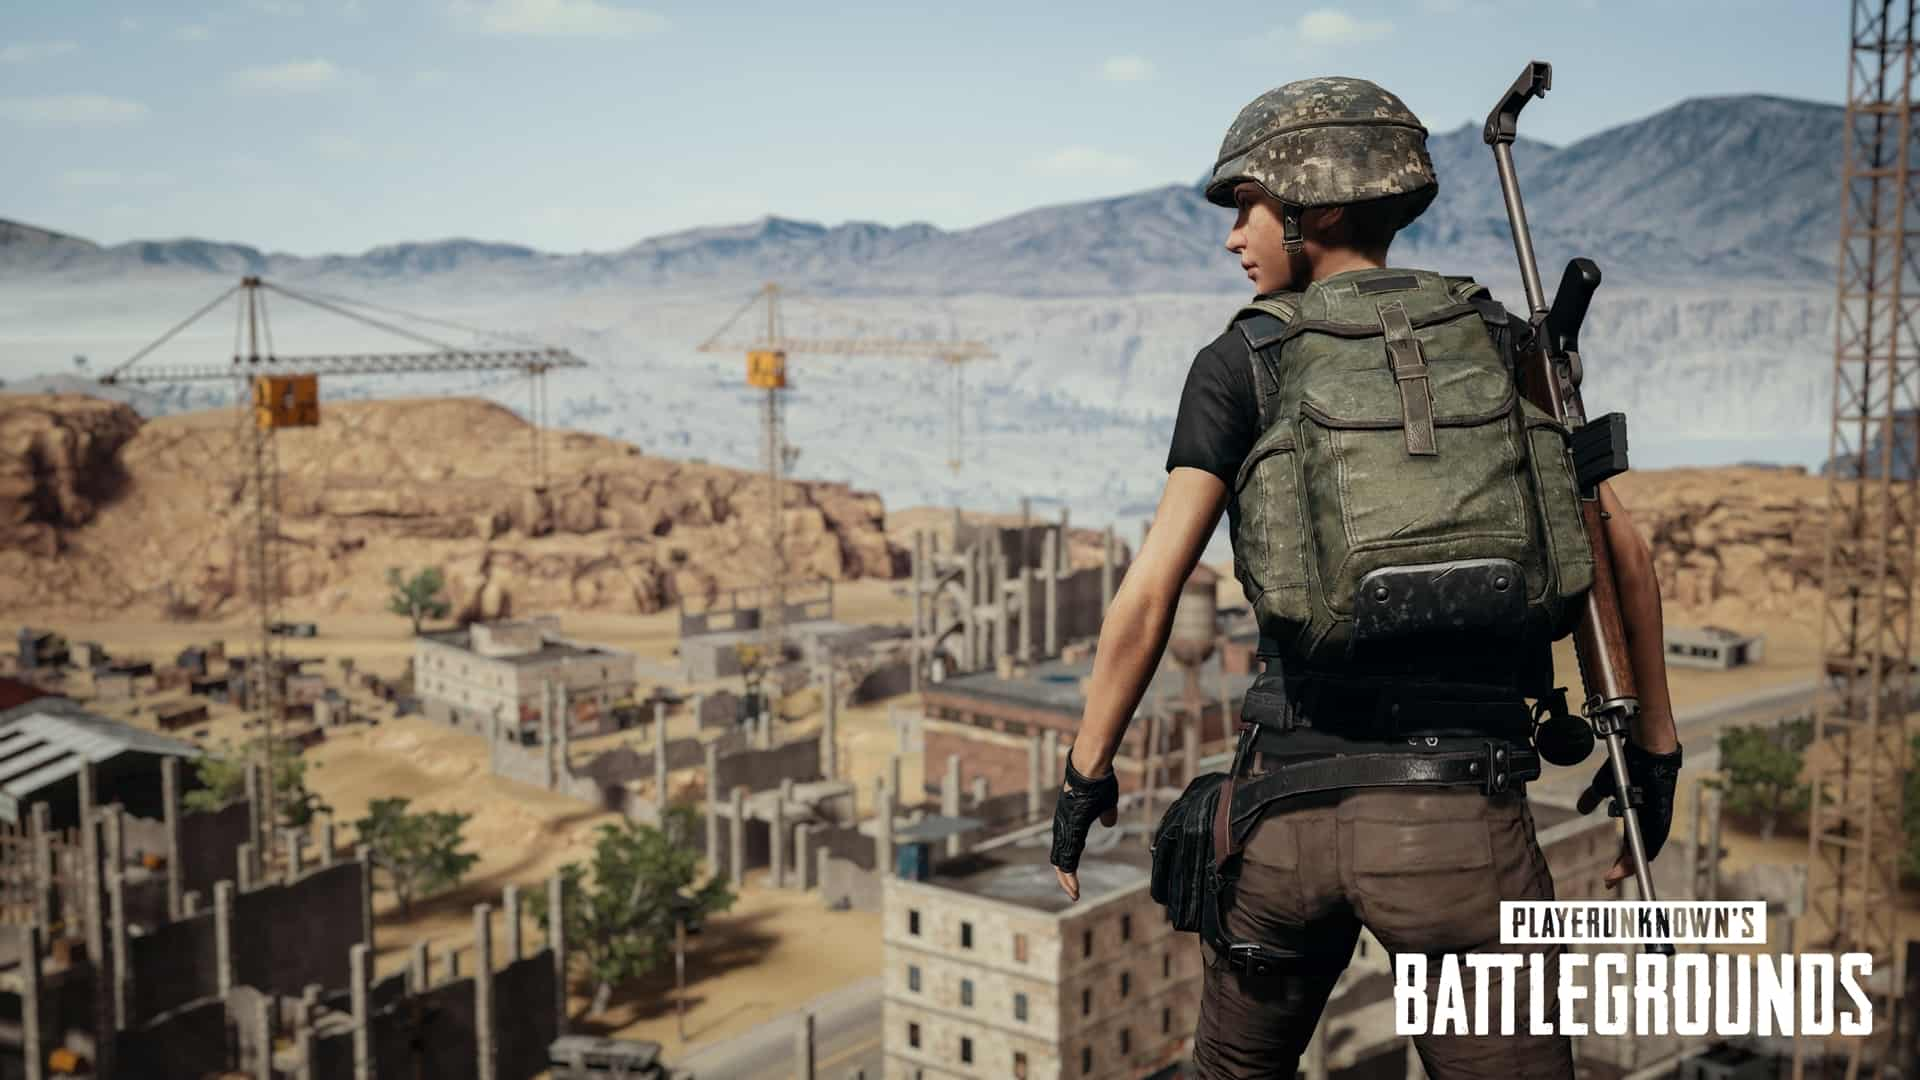 Pubg Hd Pics For Mobile: PUBG Mobile Update 0.4.0 Patch Notes Details Huge